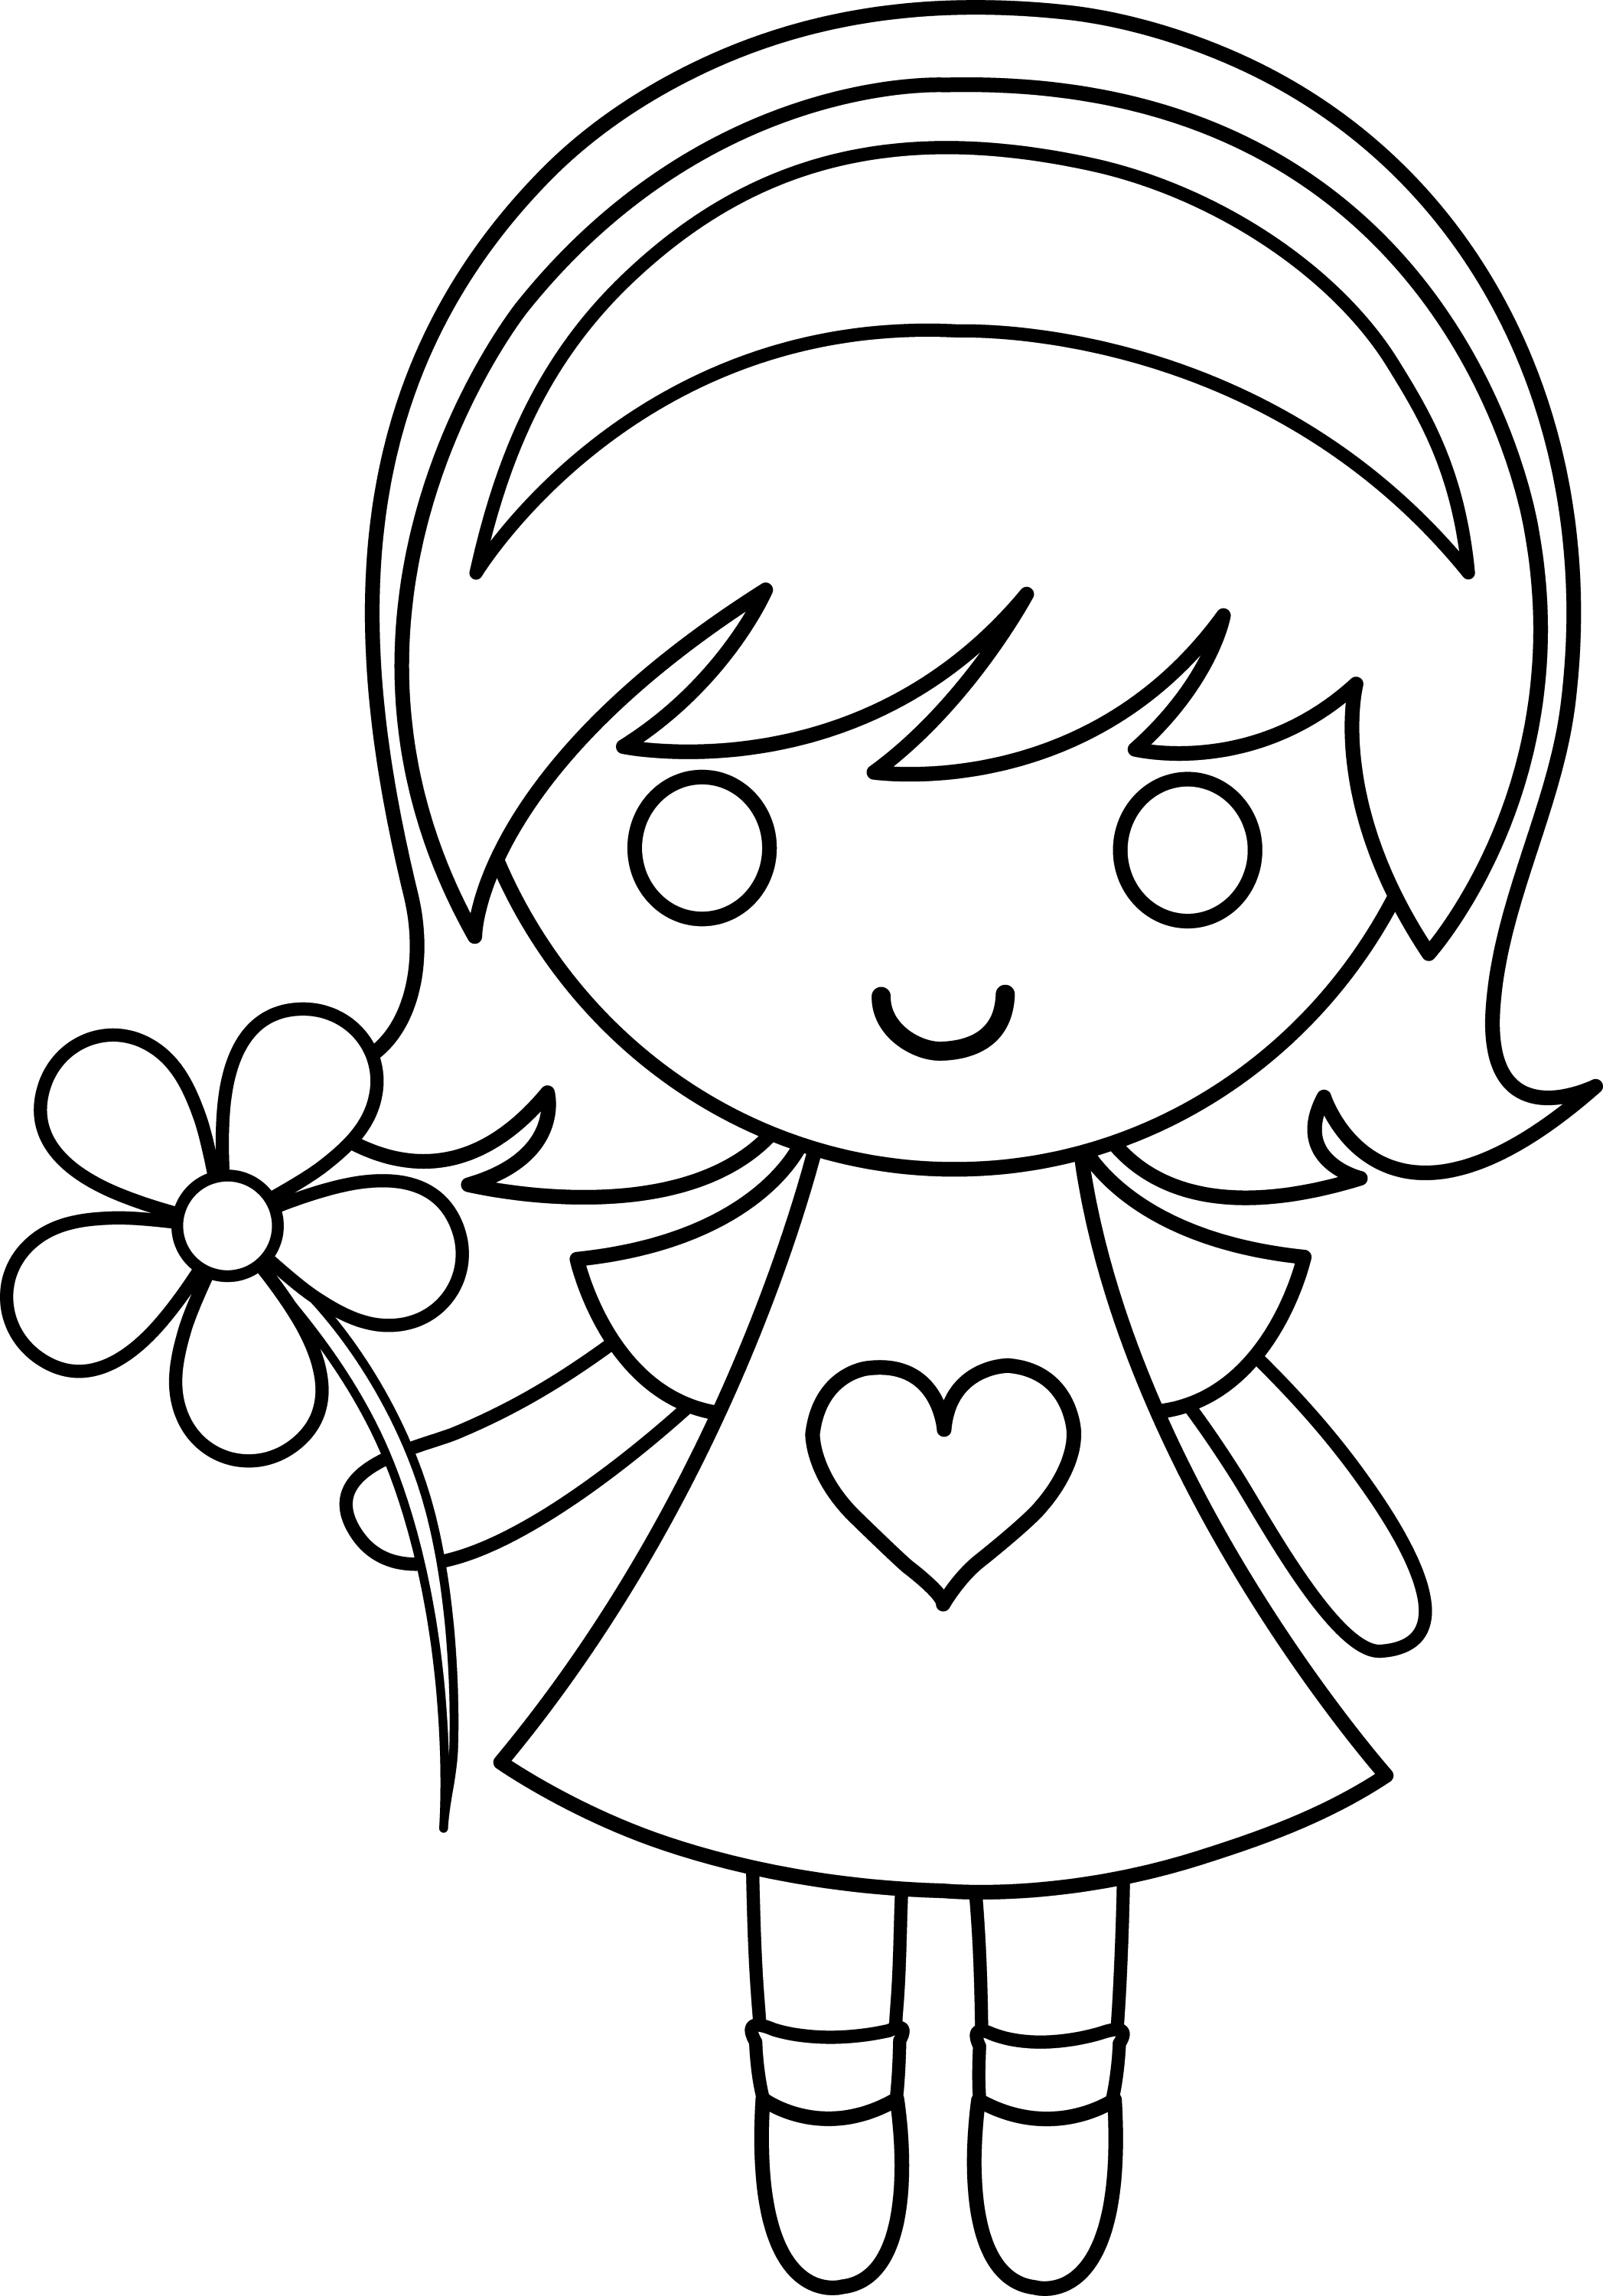 graphic art coloring pages free free doodle art coloring pages download free clip art graphic coloring pages